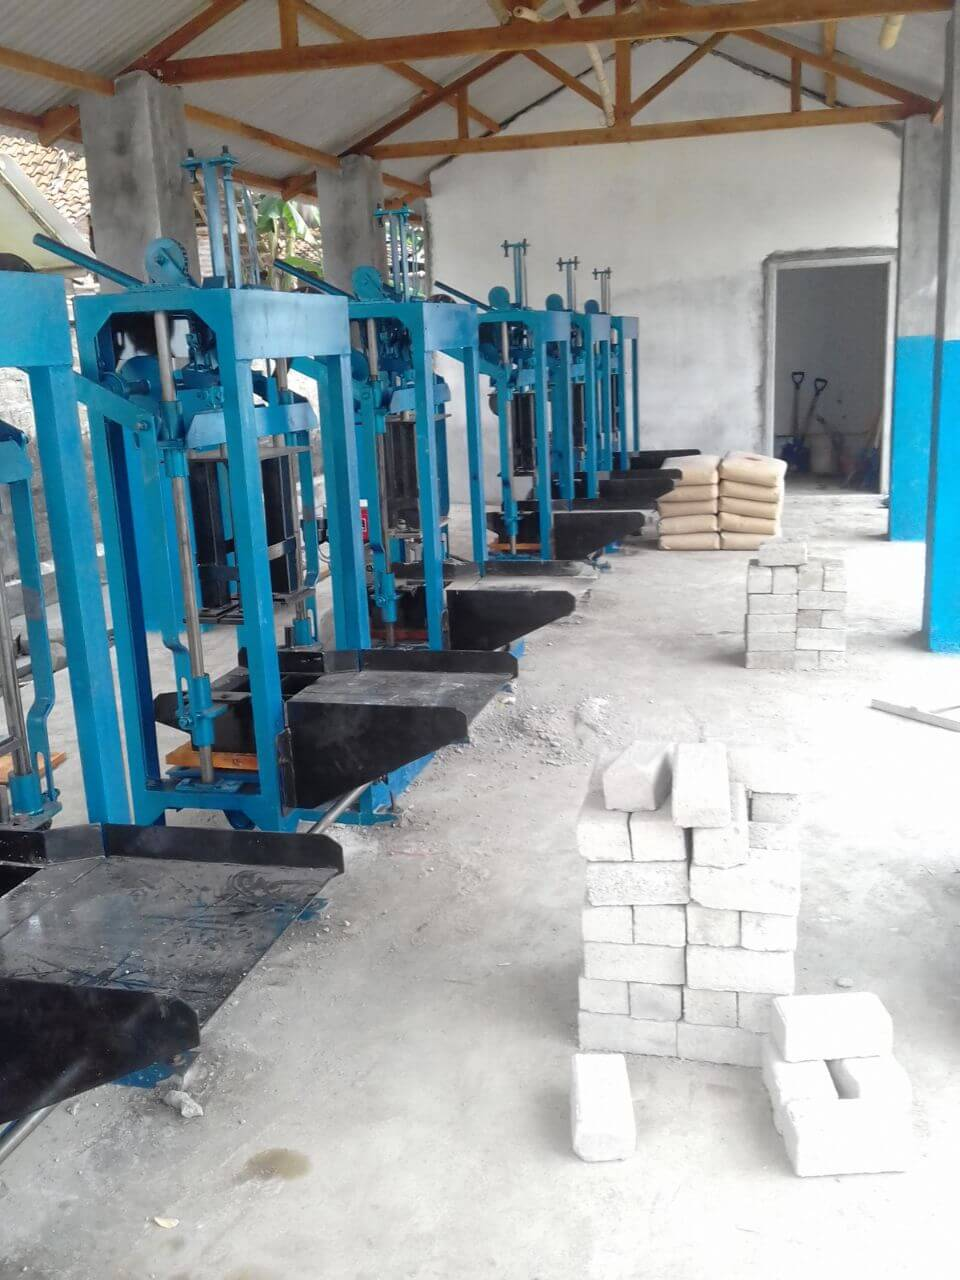 Jual mesin paving block manual di medan